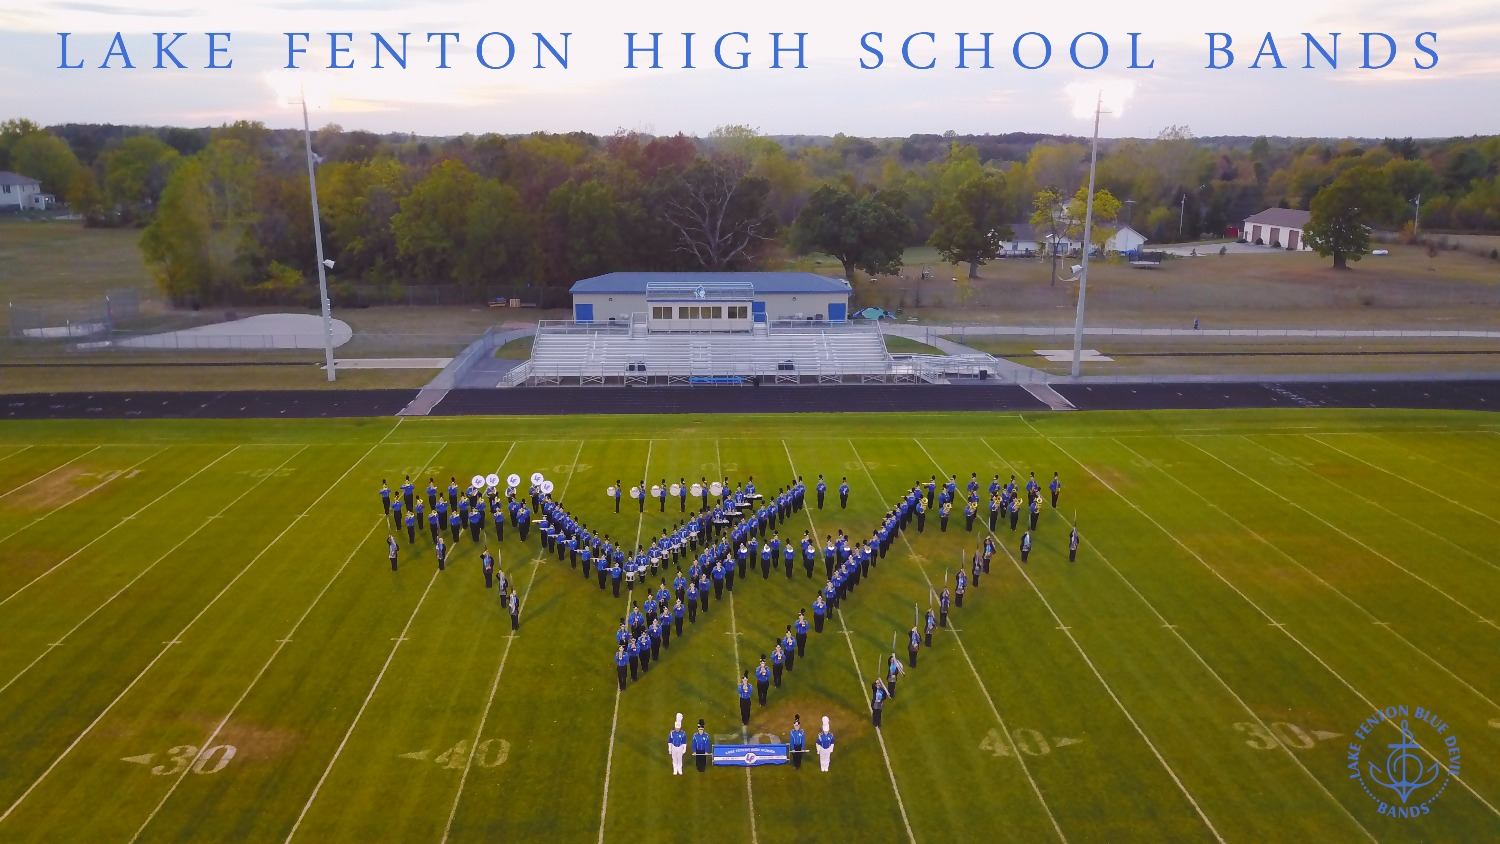 Lake Fenton High School Band